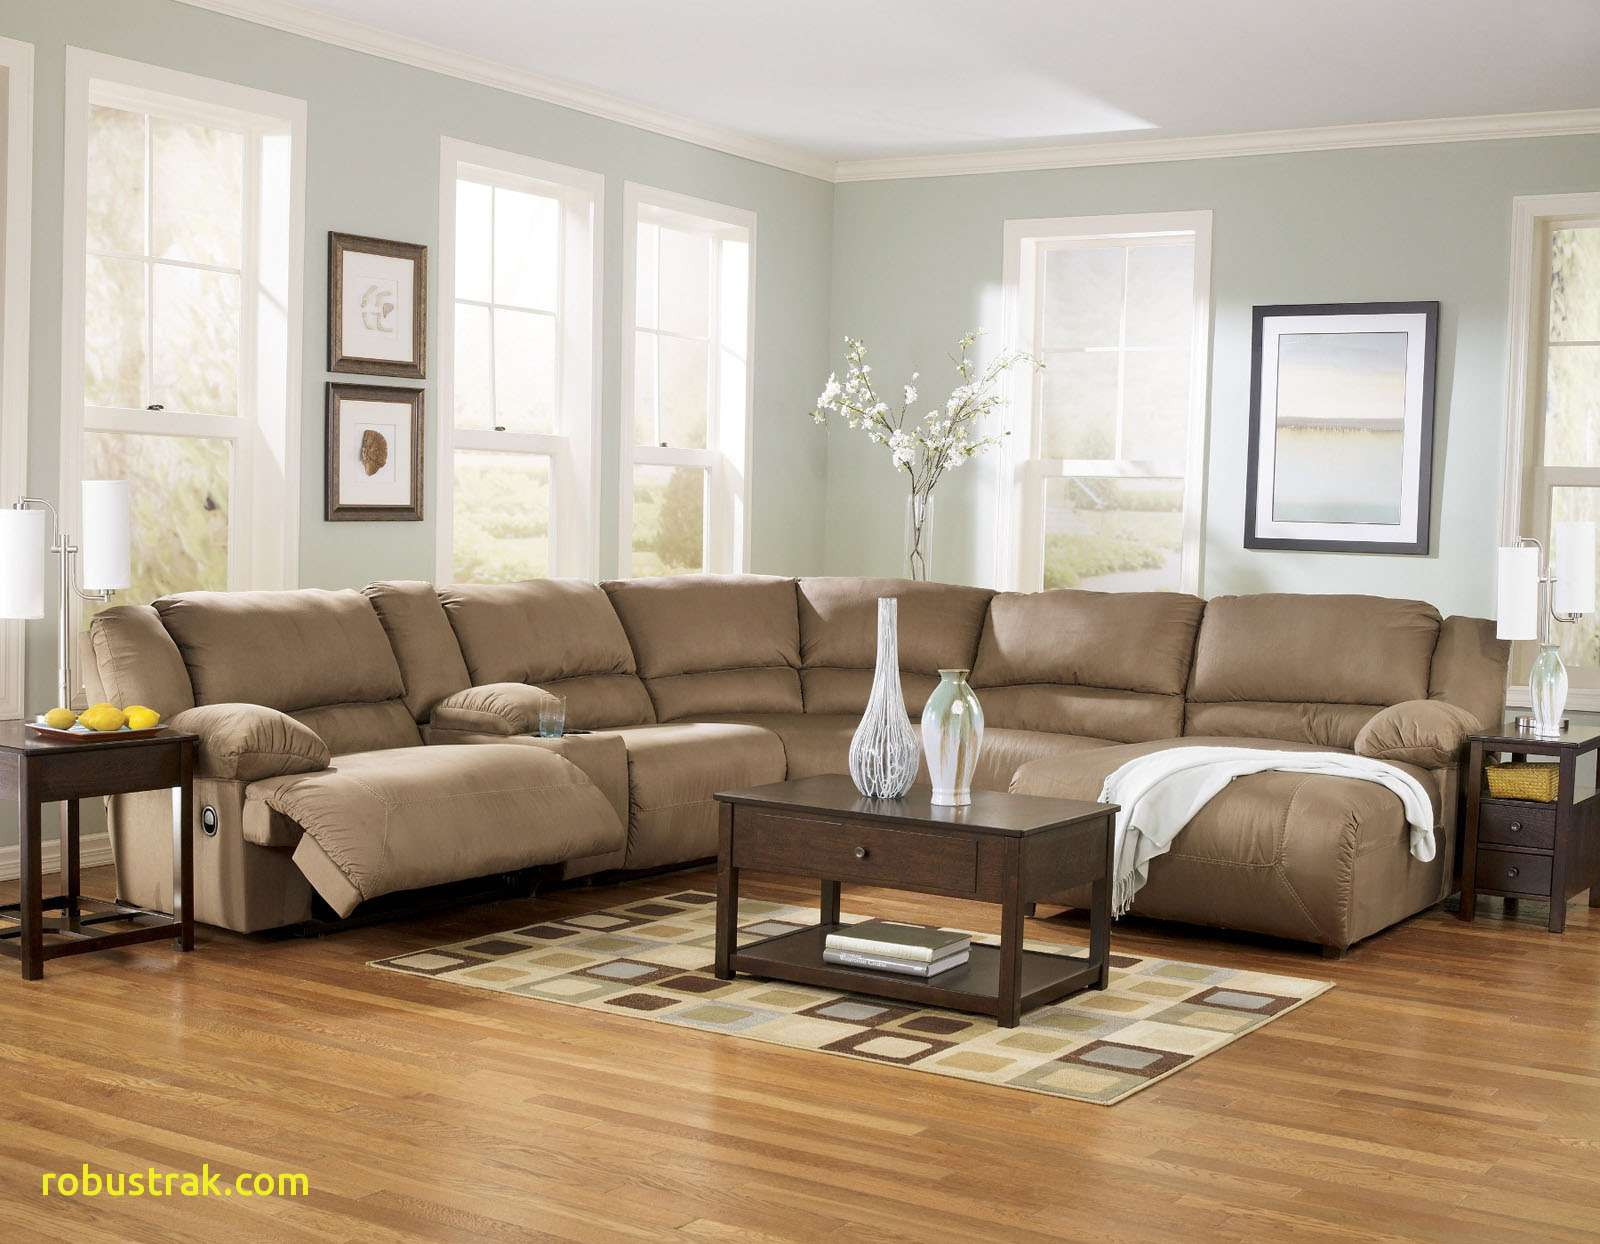 light hardwood floor living room ideas of unique light brown sofa wall color home design ideas in living room 4way living room sectional sofa and sofas ideas home interior plus awe inspiring